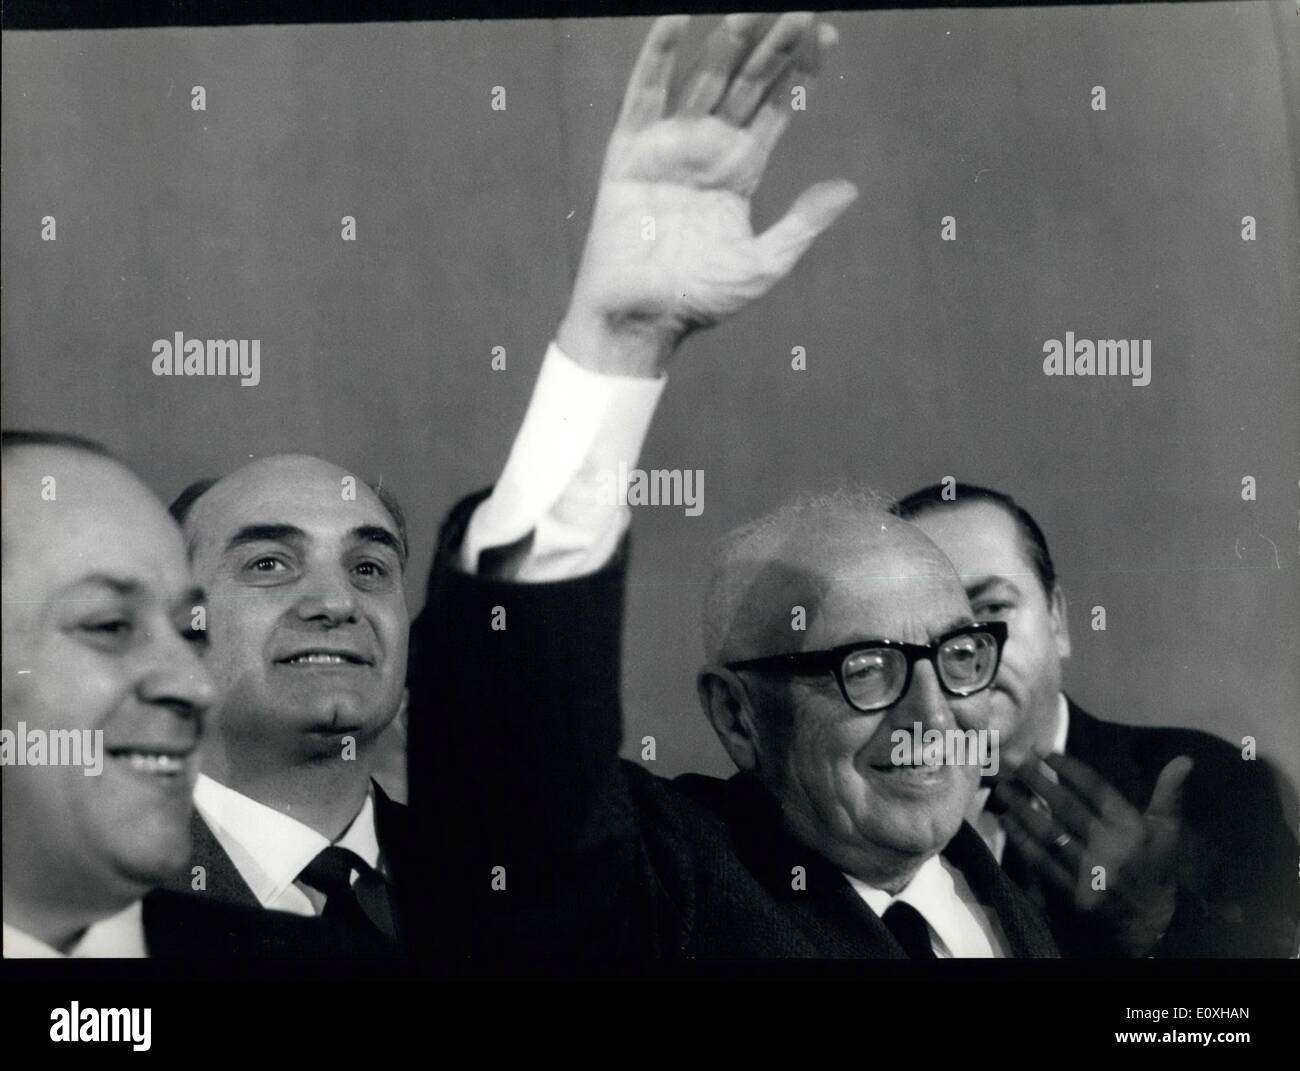 Oct. 10, 1966 - Socialists at conference. The Socialists of Democratic Party ( the same of Presi dent of the Republica Scragat) - Stock Image